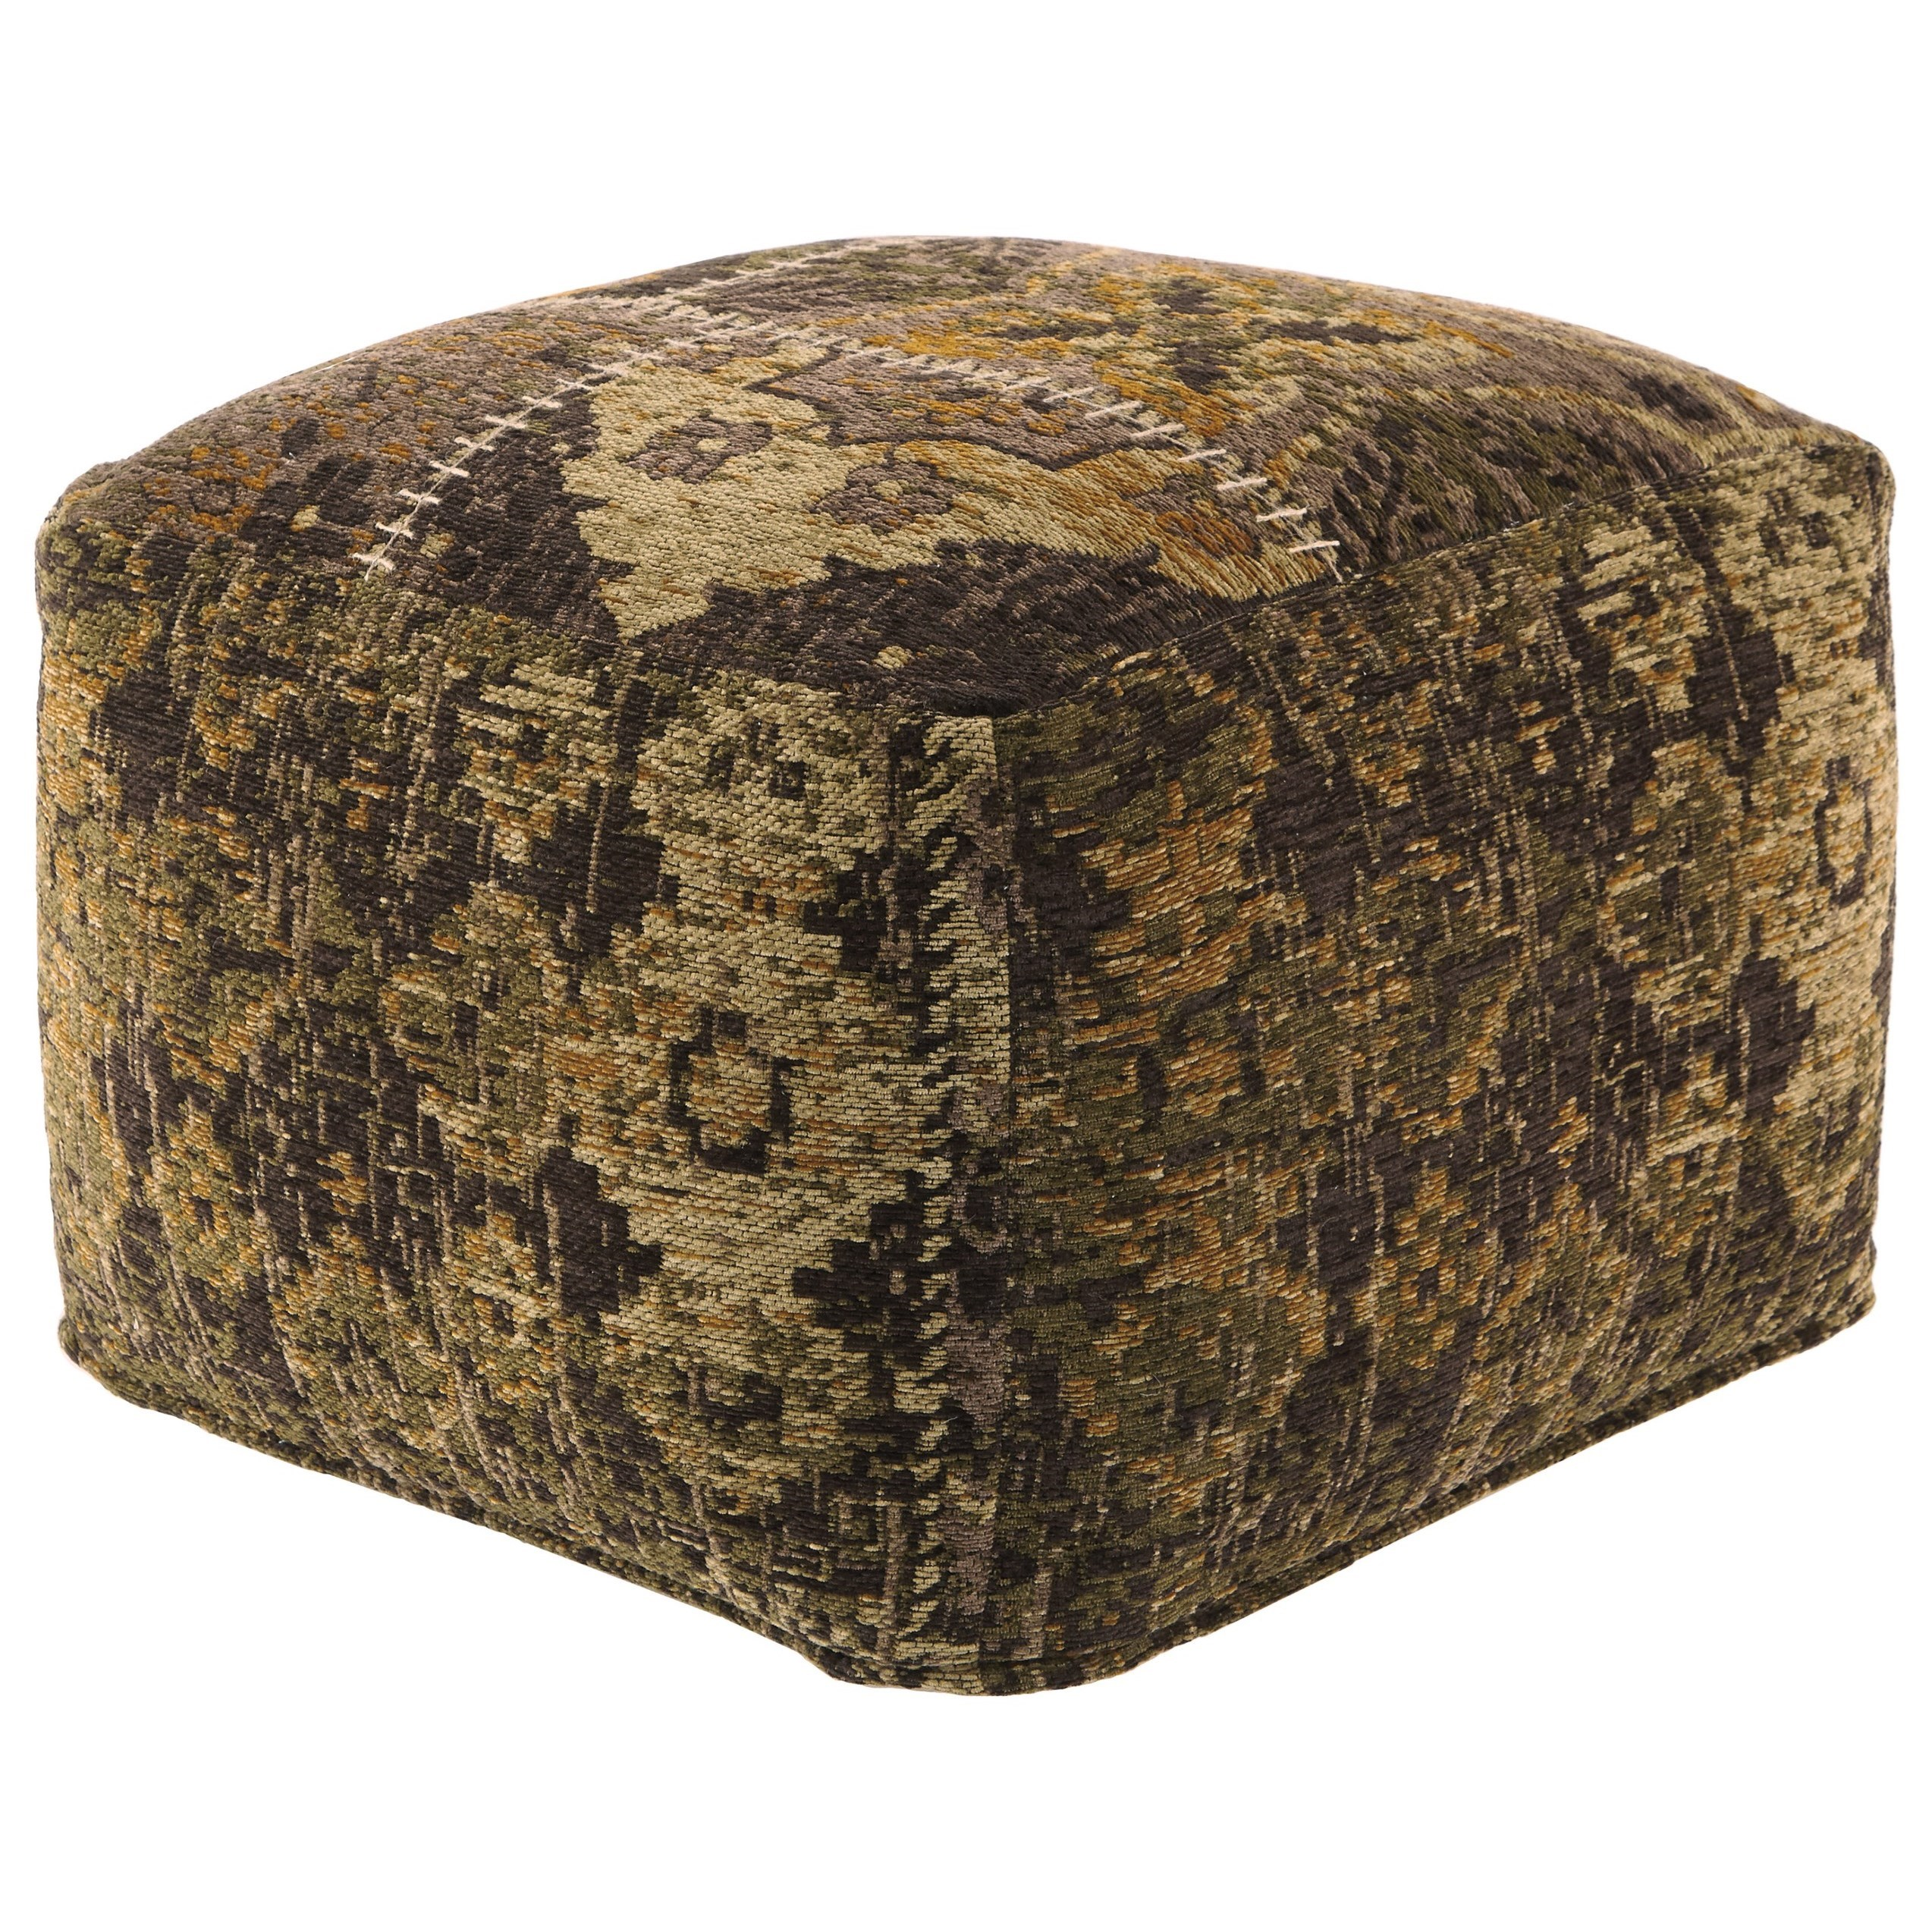 signature design by ashley poufs a1000110 stevensville patchwork pouf del sol furniture poufs. Black Bedroom Furniture Sets. Home Design Ideas